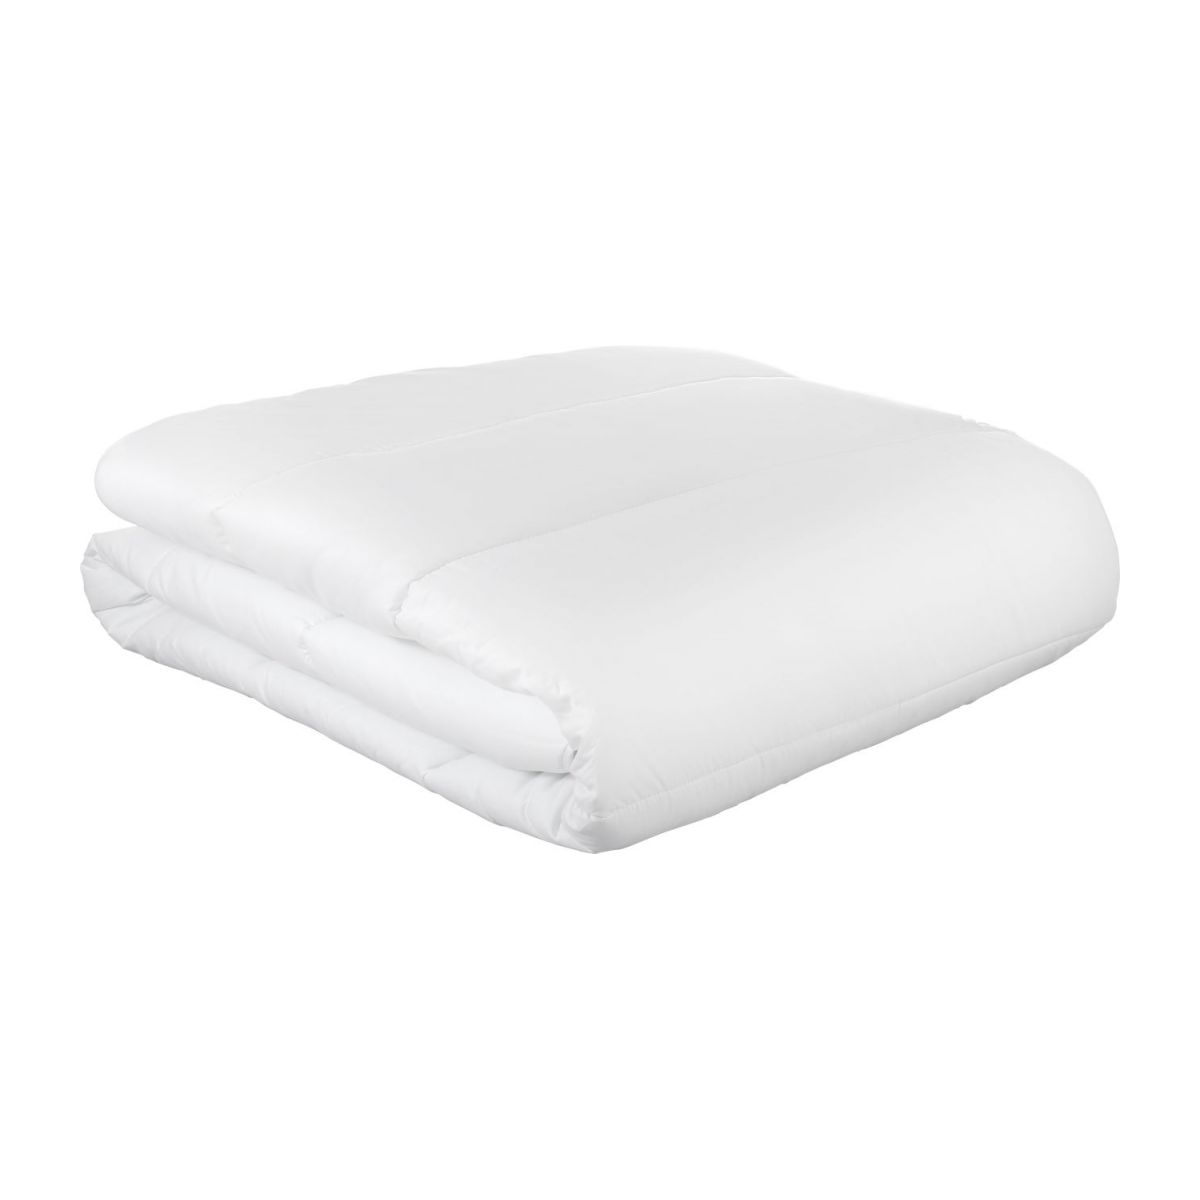 Couette 240x220cm, 300g blanche n°1